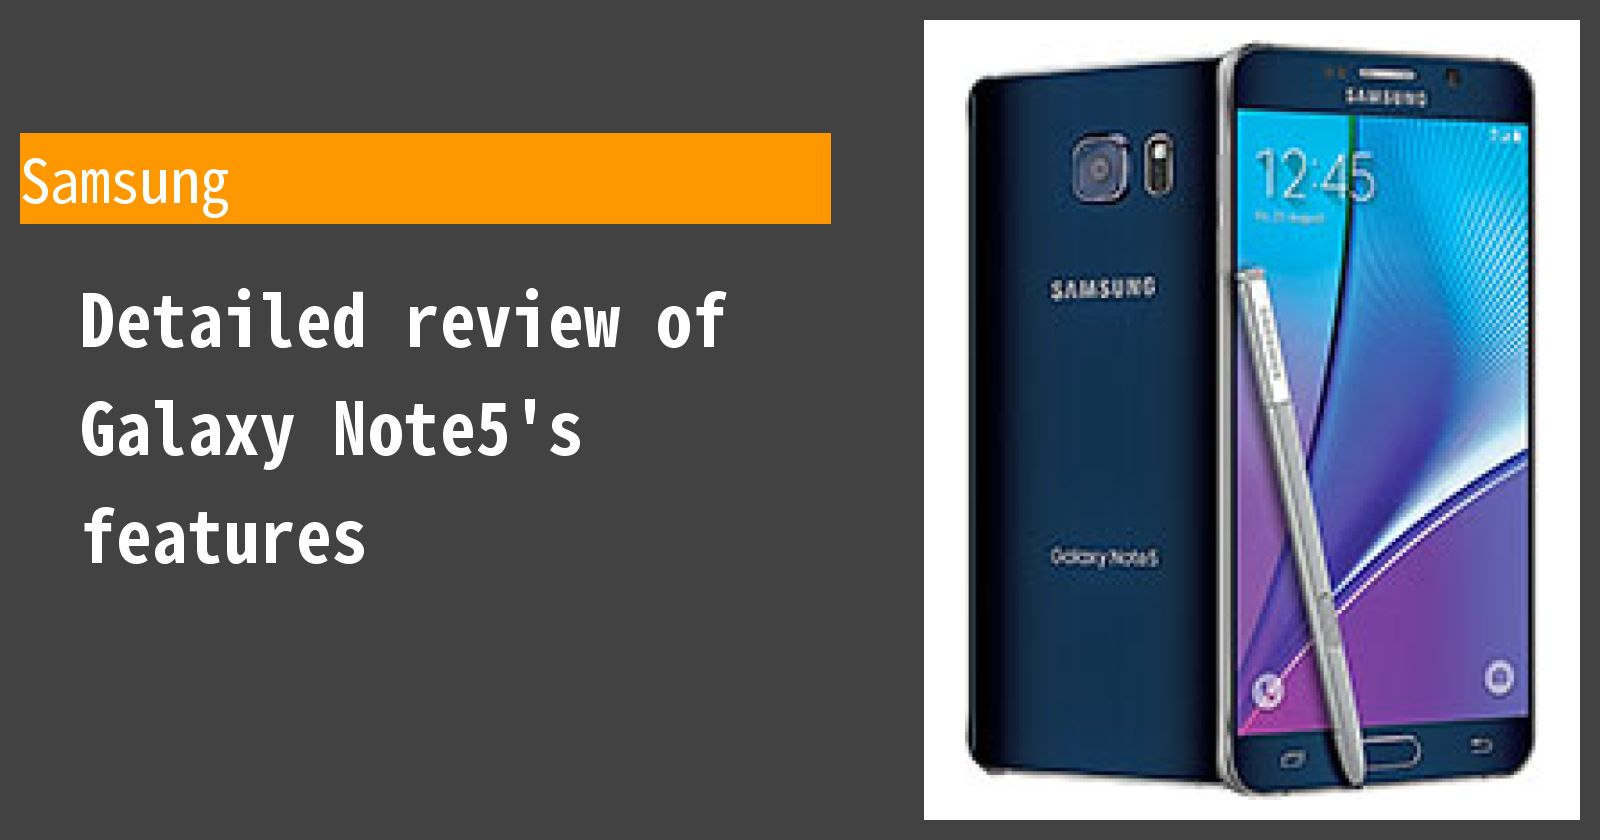 Detailed review of Galaxy Note5's features